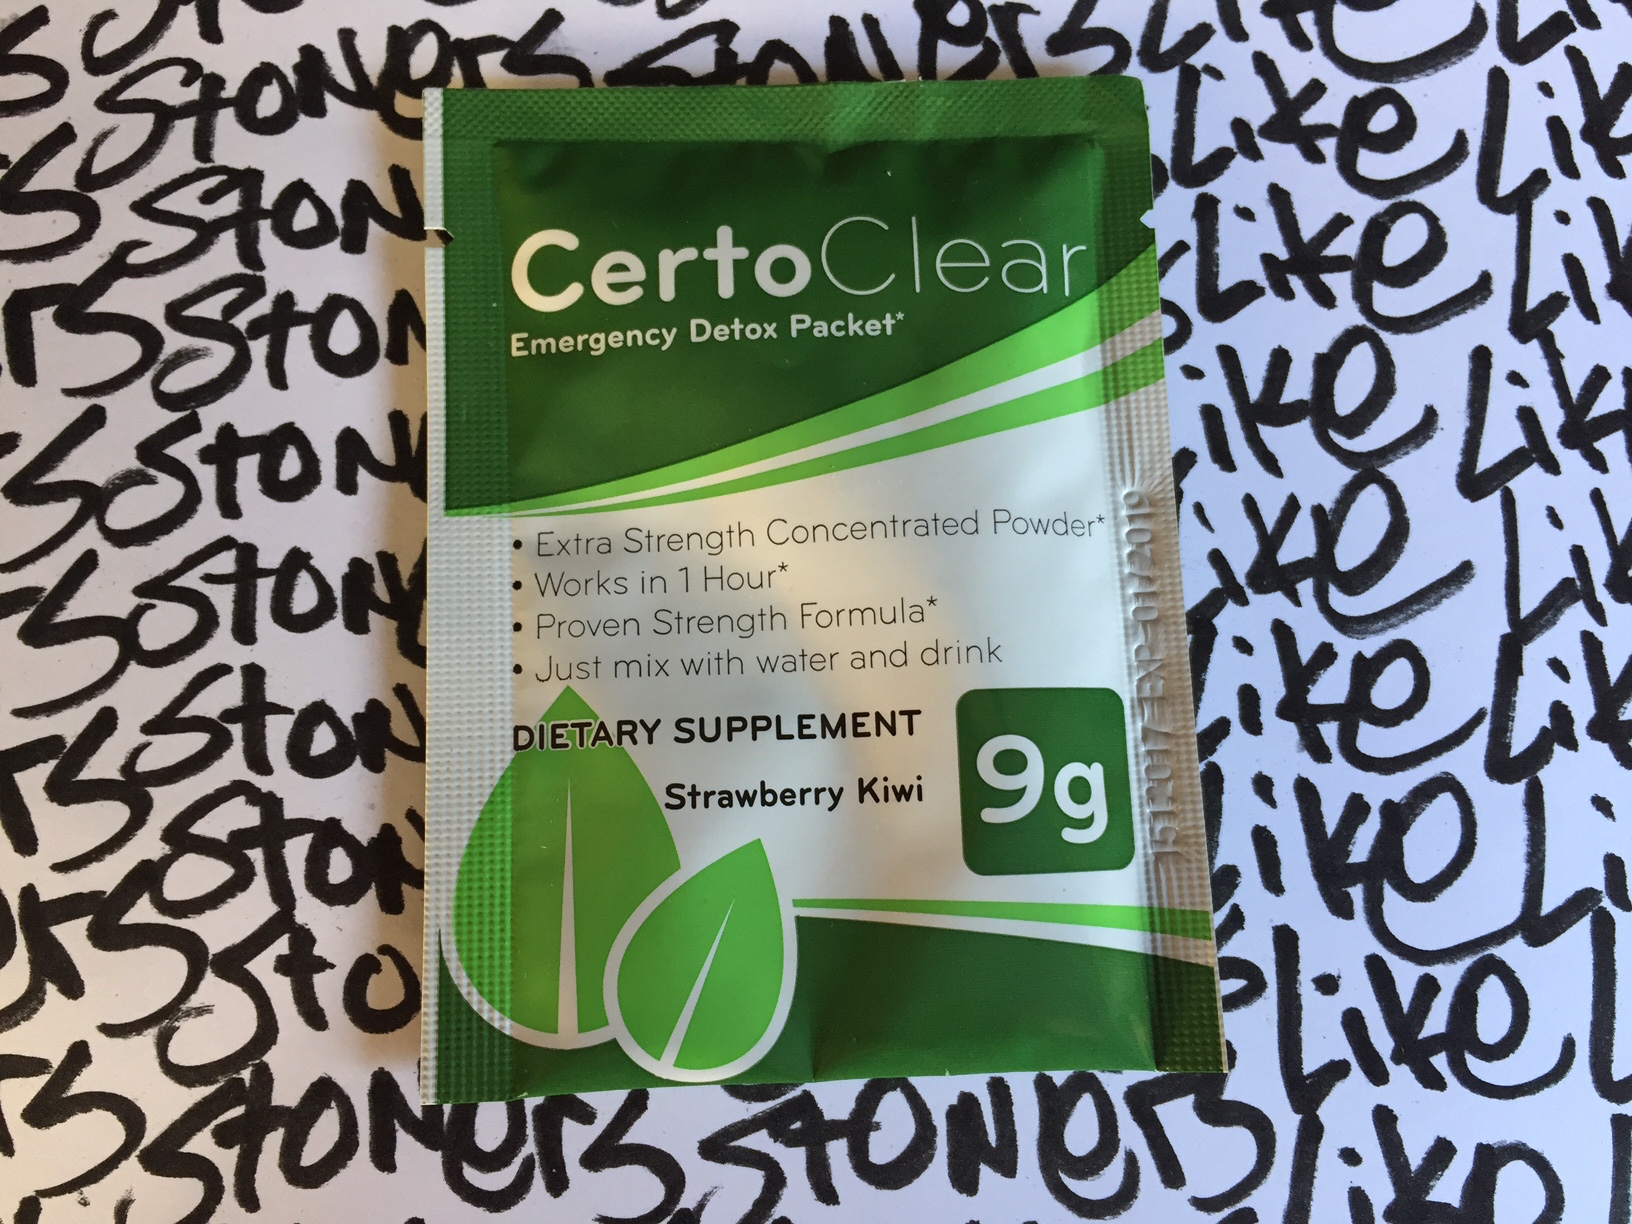 Certoclear Certo Detox Review